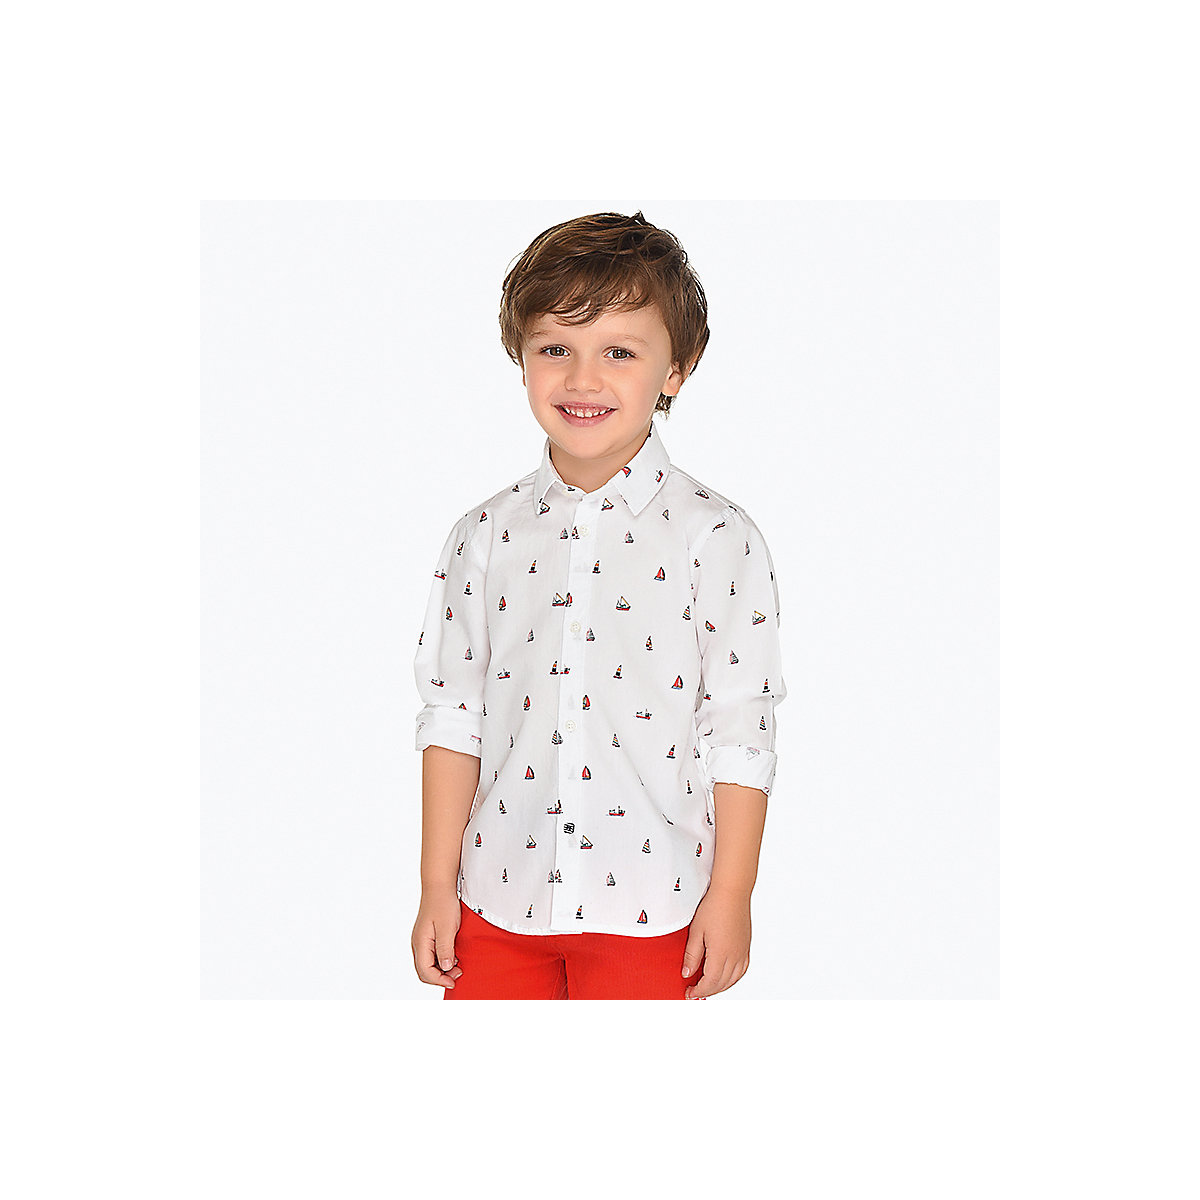 Blouses & Shirts MAYORAL 10689076 Children s Clothing shirt with long sleeve for a boy natural materials trendy round neck long sleeve love potion jacquard women s sweater